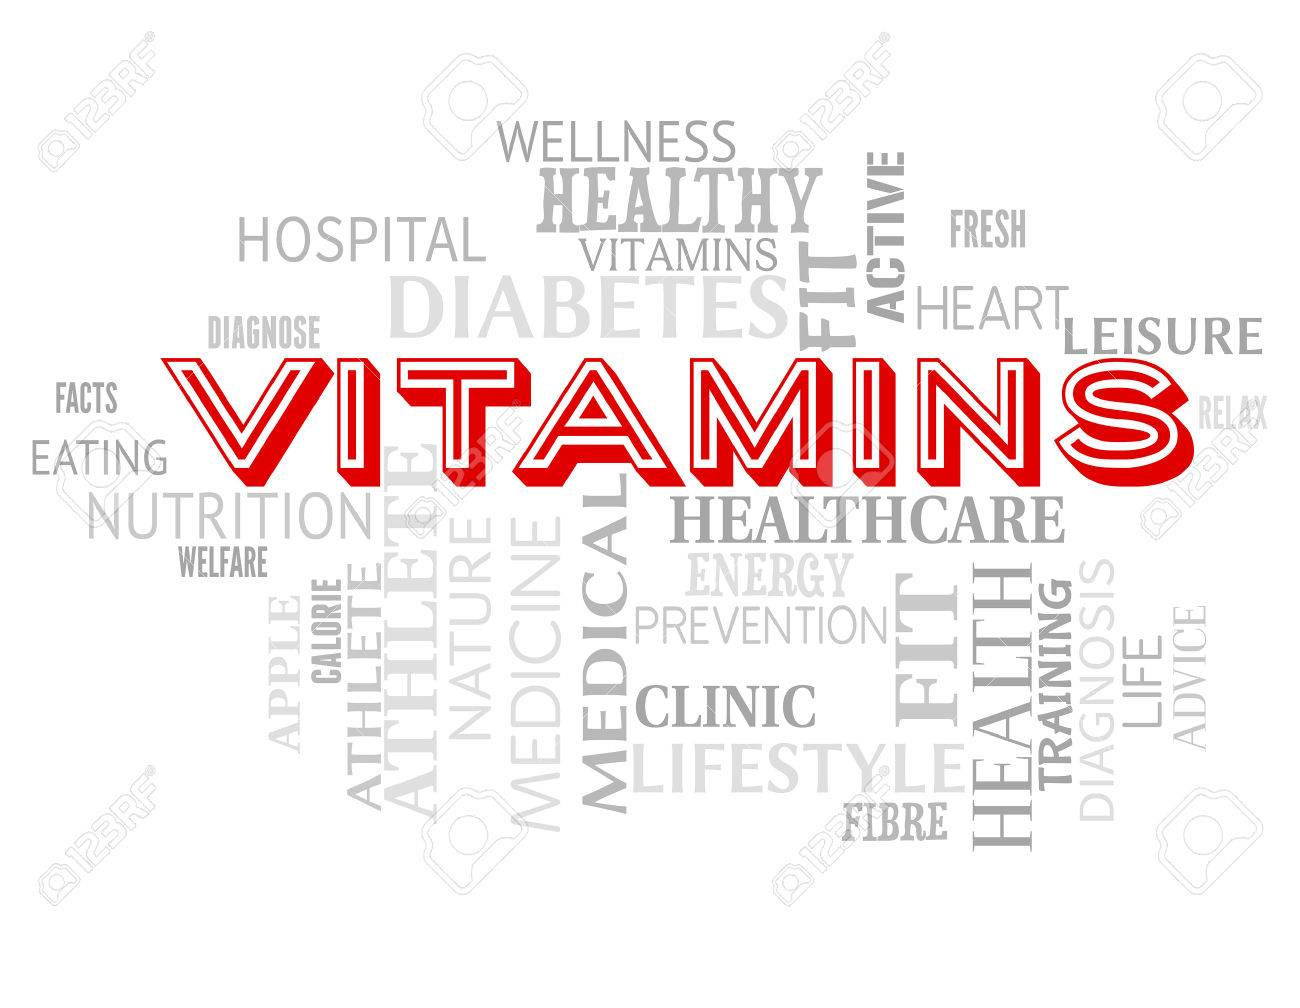 vitamins words indicating nutritional supplements and multivitamins